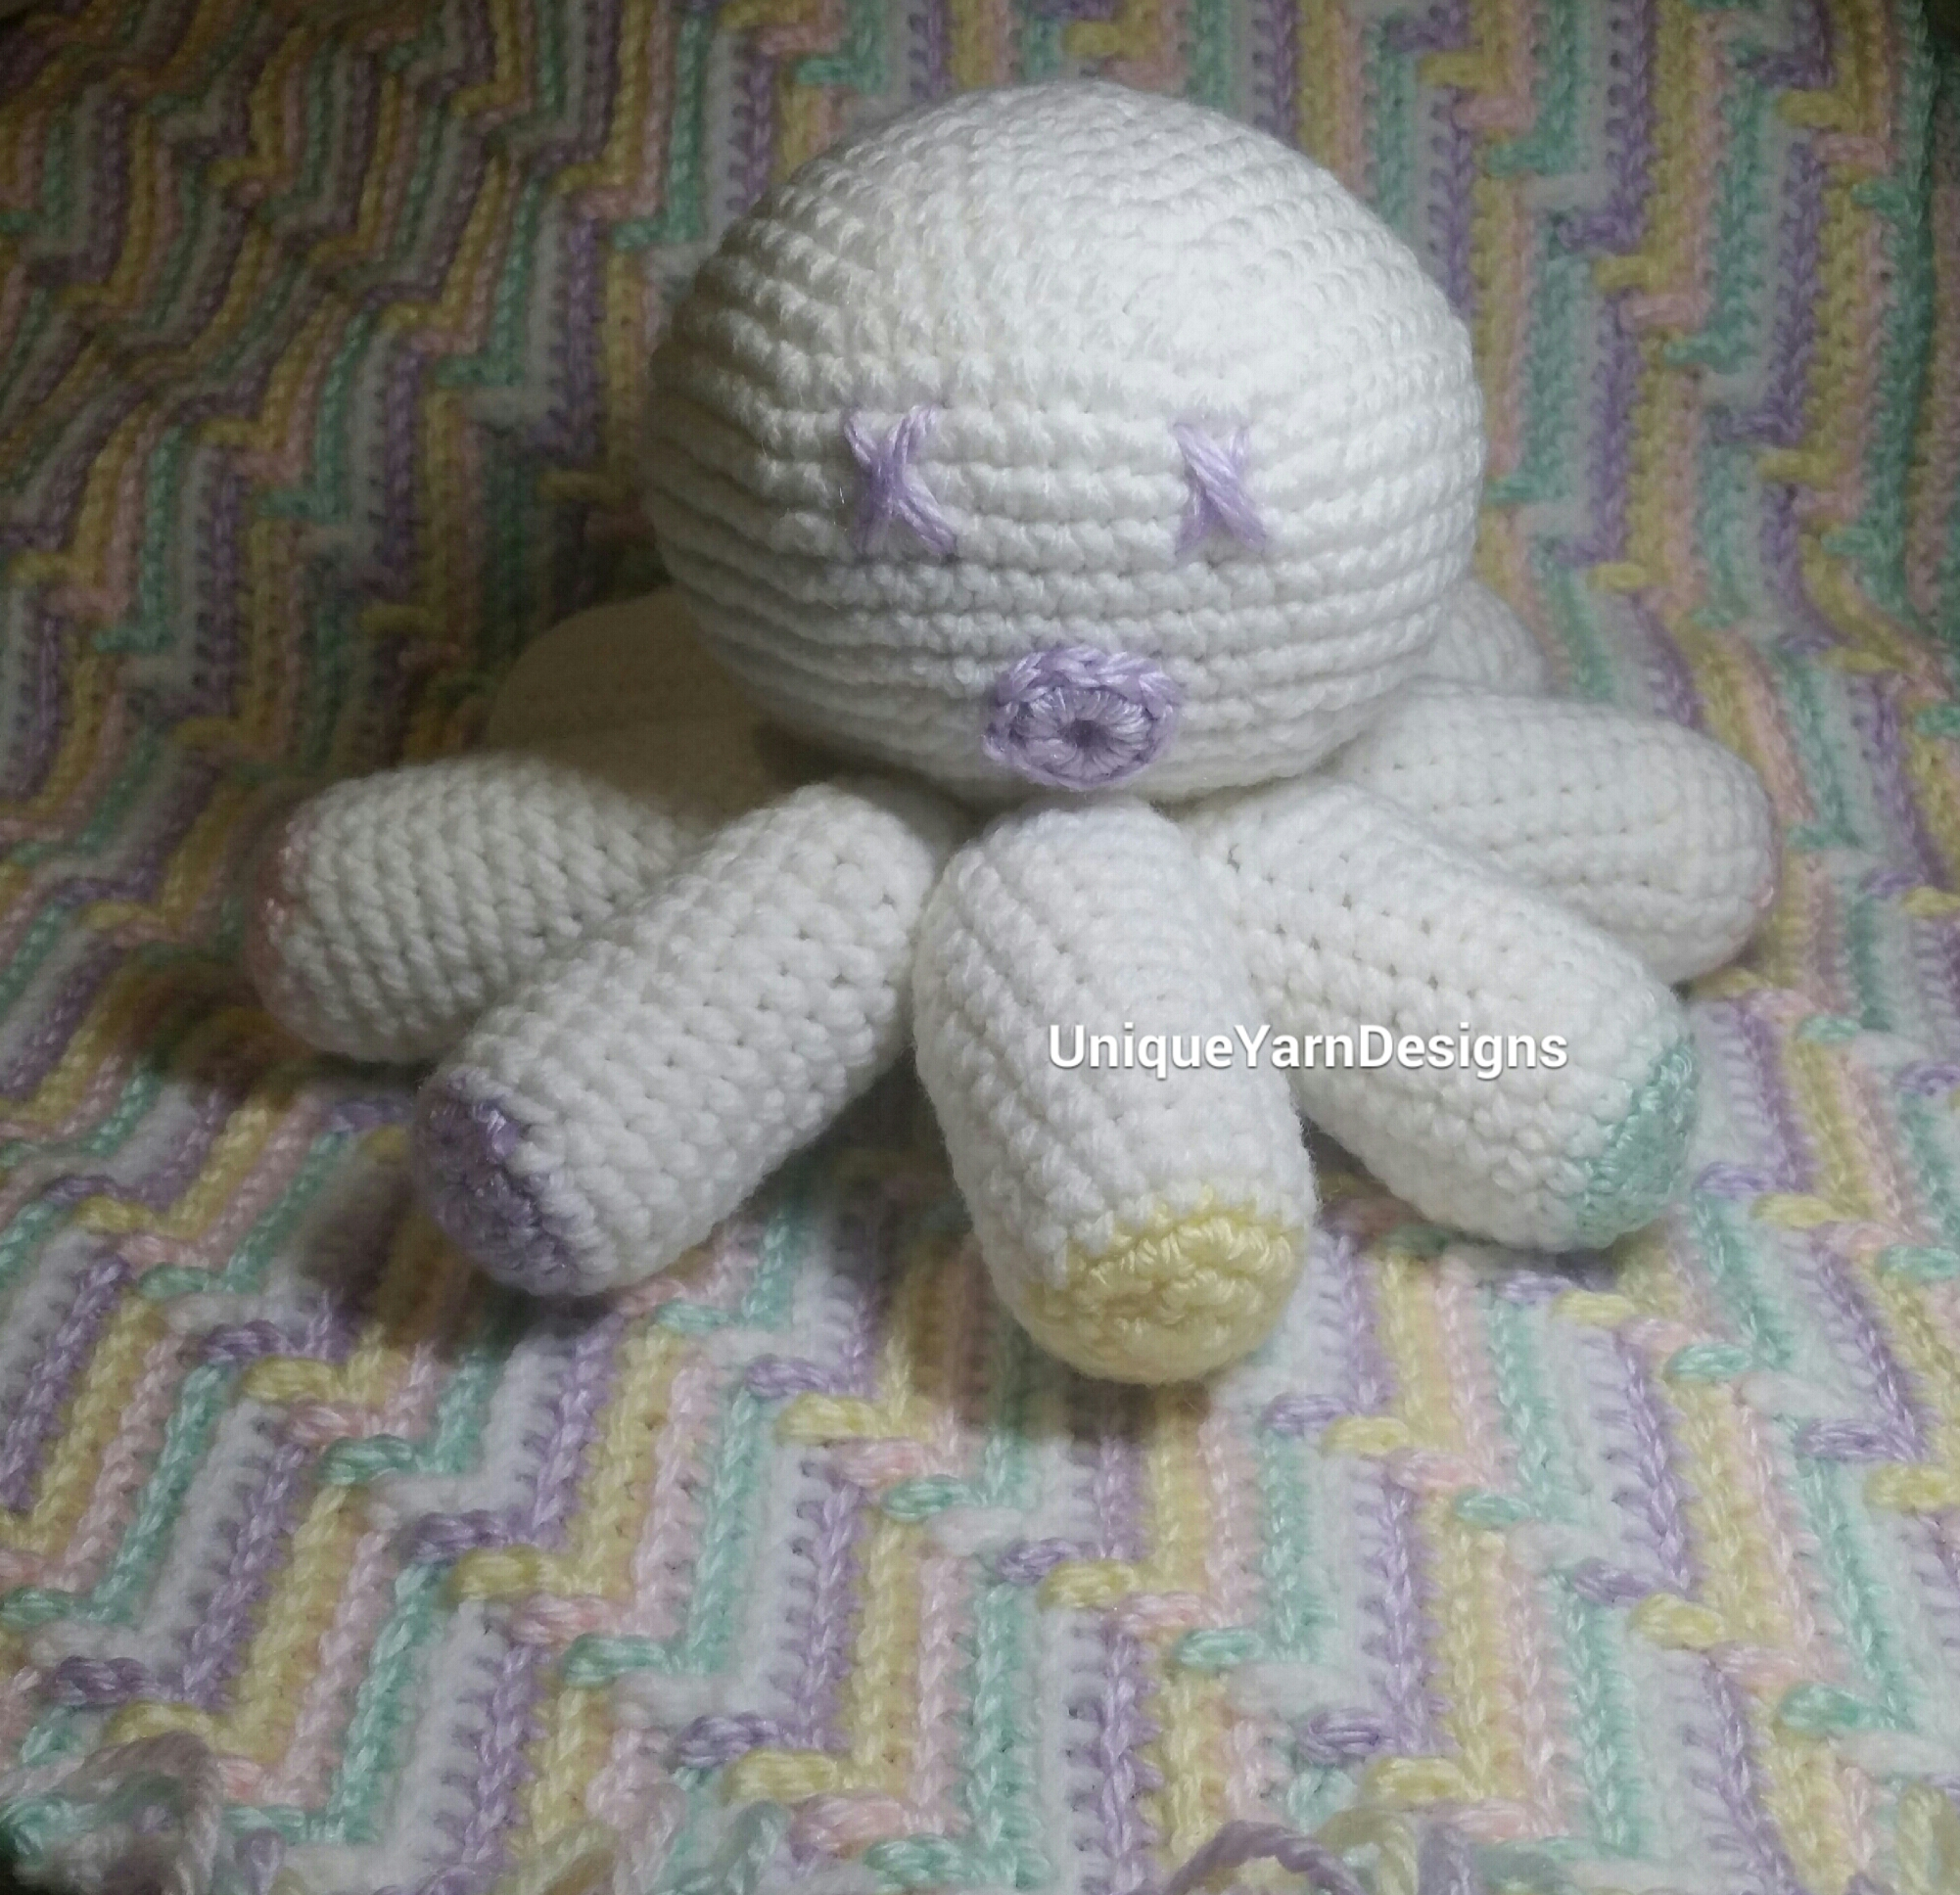 Crochet Patterns Unique : Baby Octopus Crochet Pattern - Unique Yarn Designs